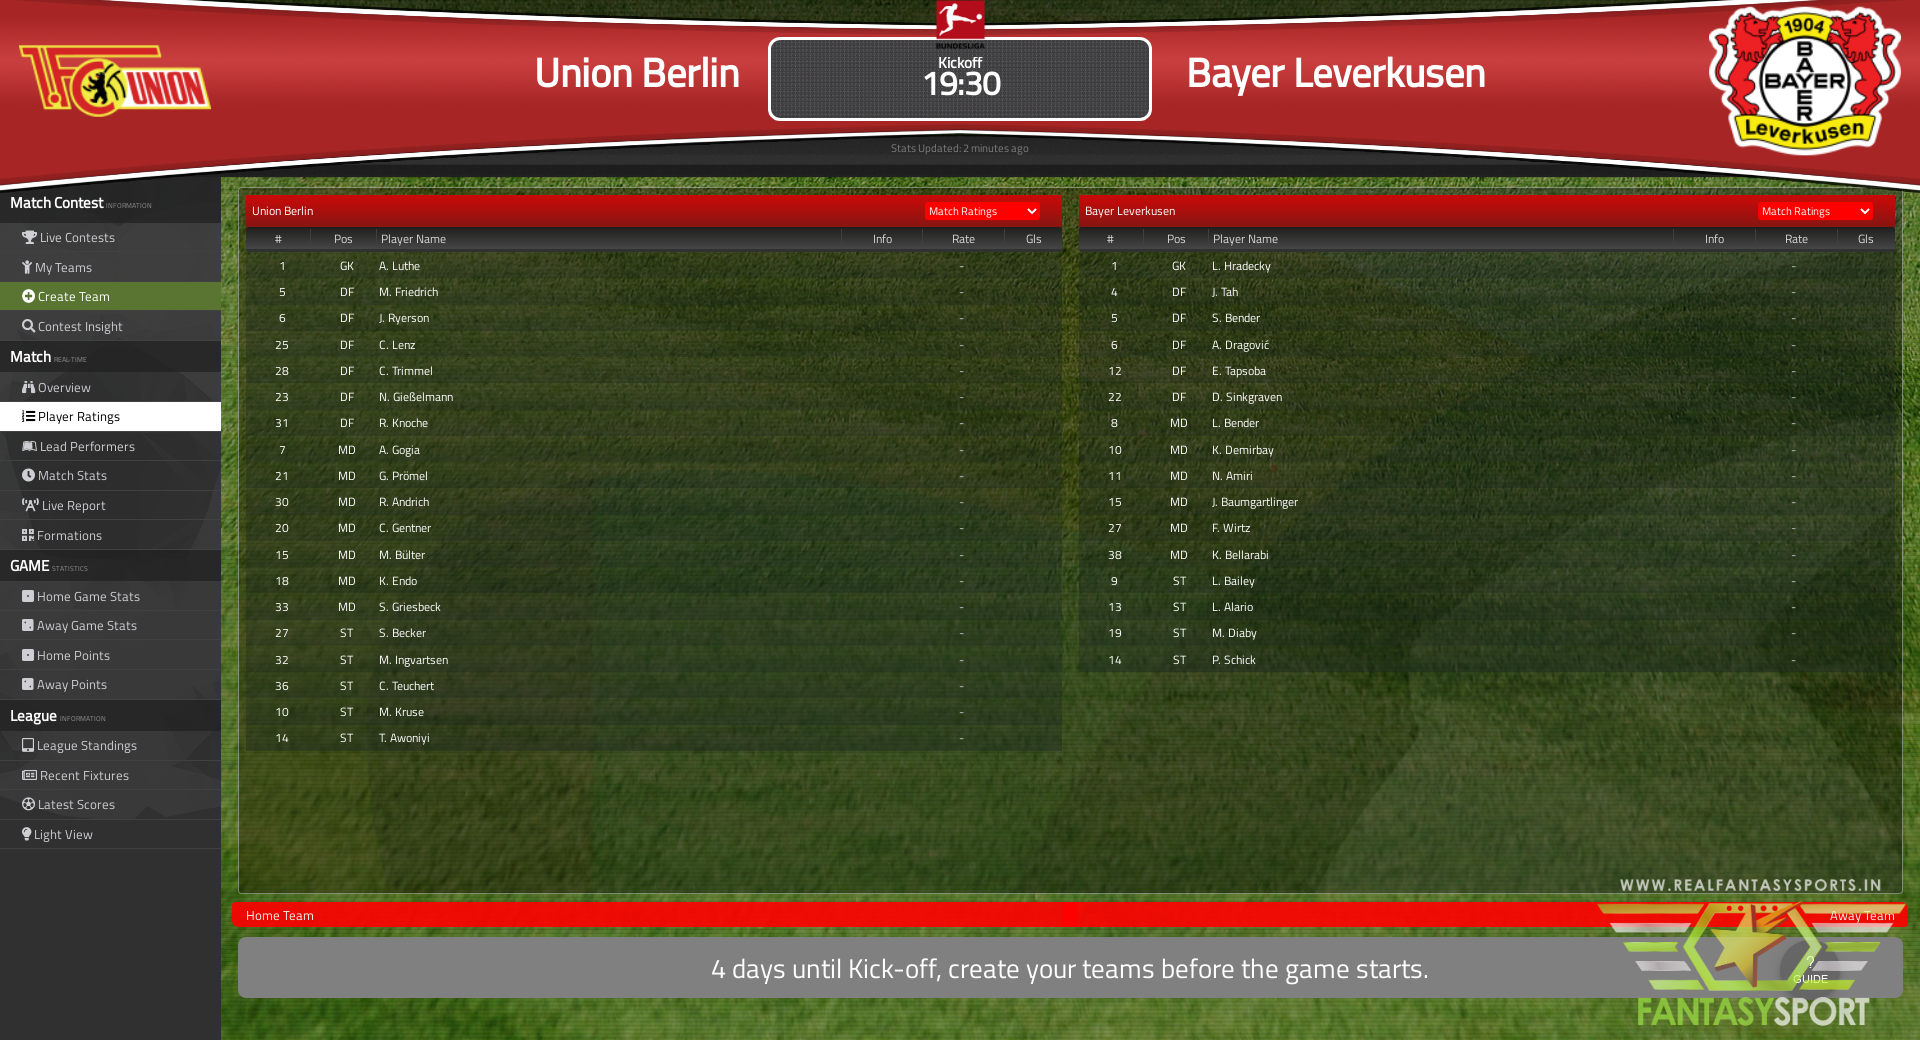 Fantasy Football Union Berlin Vs Bayer Leverkusen Friday 15th January 2021